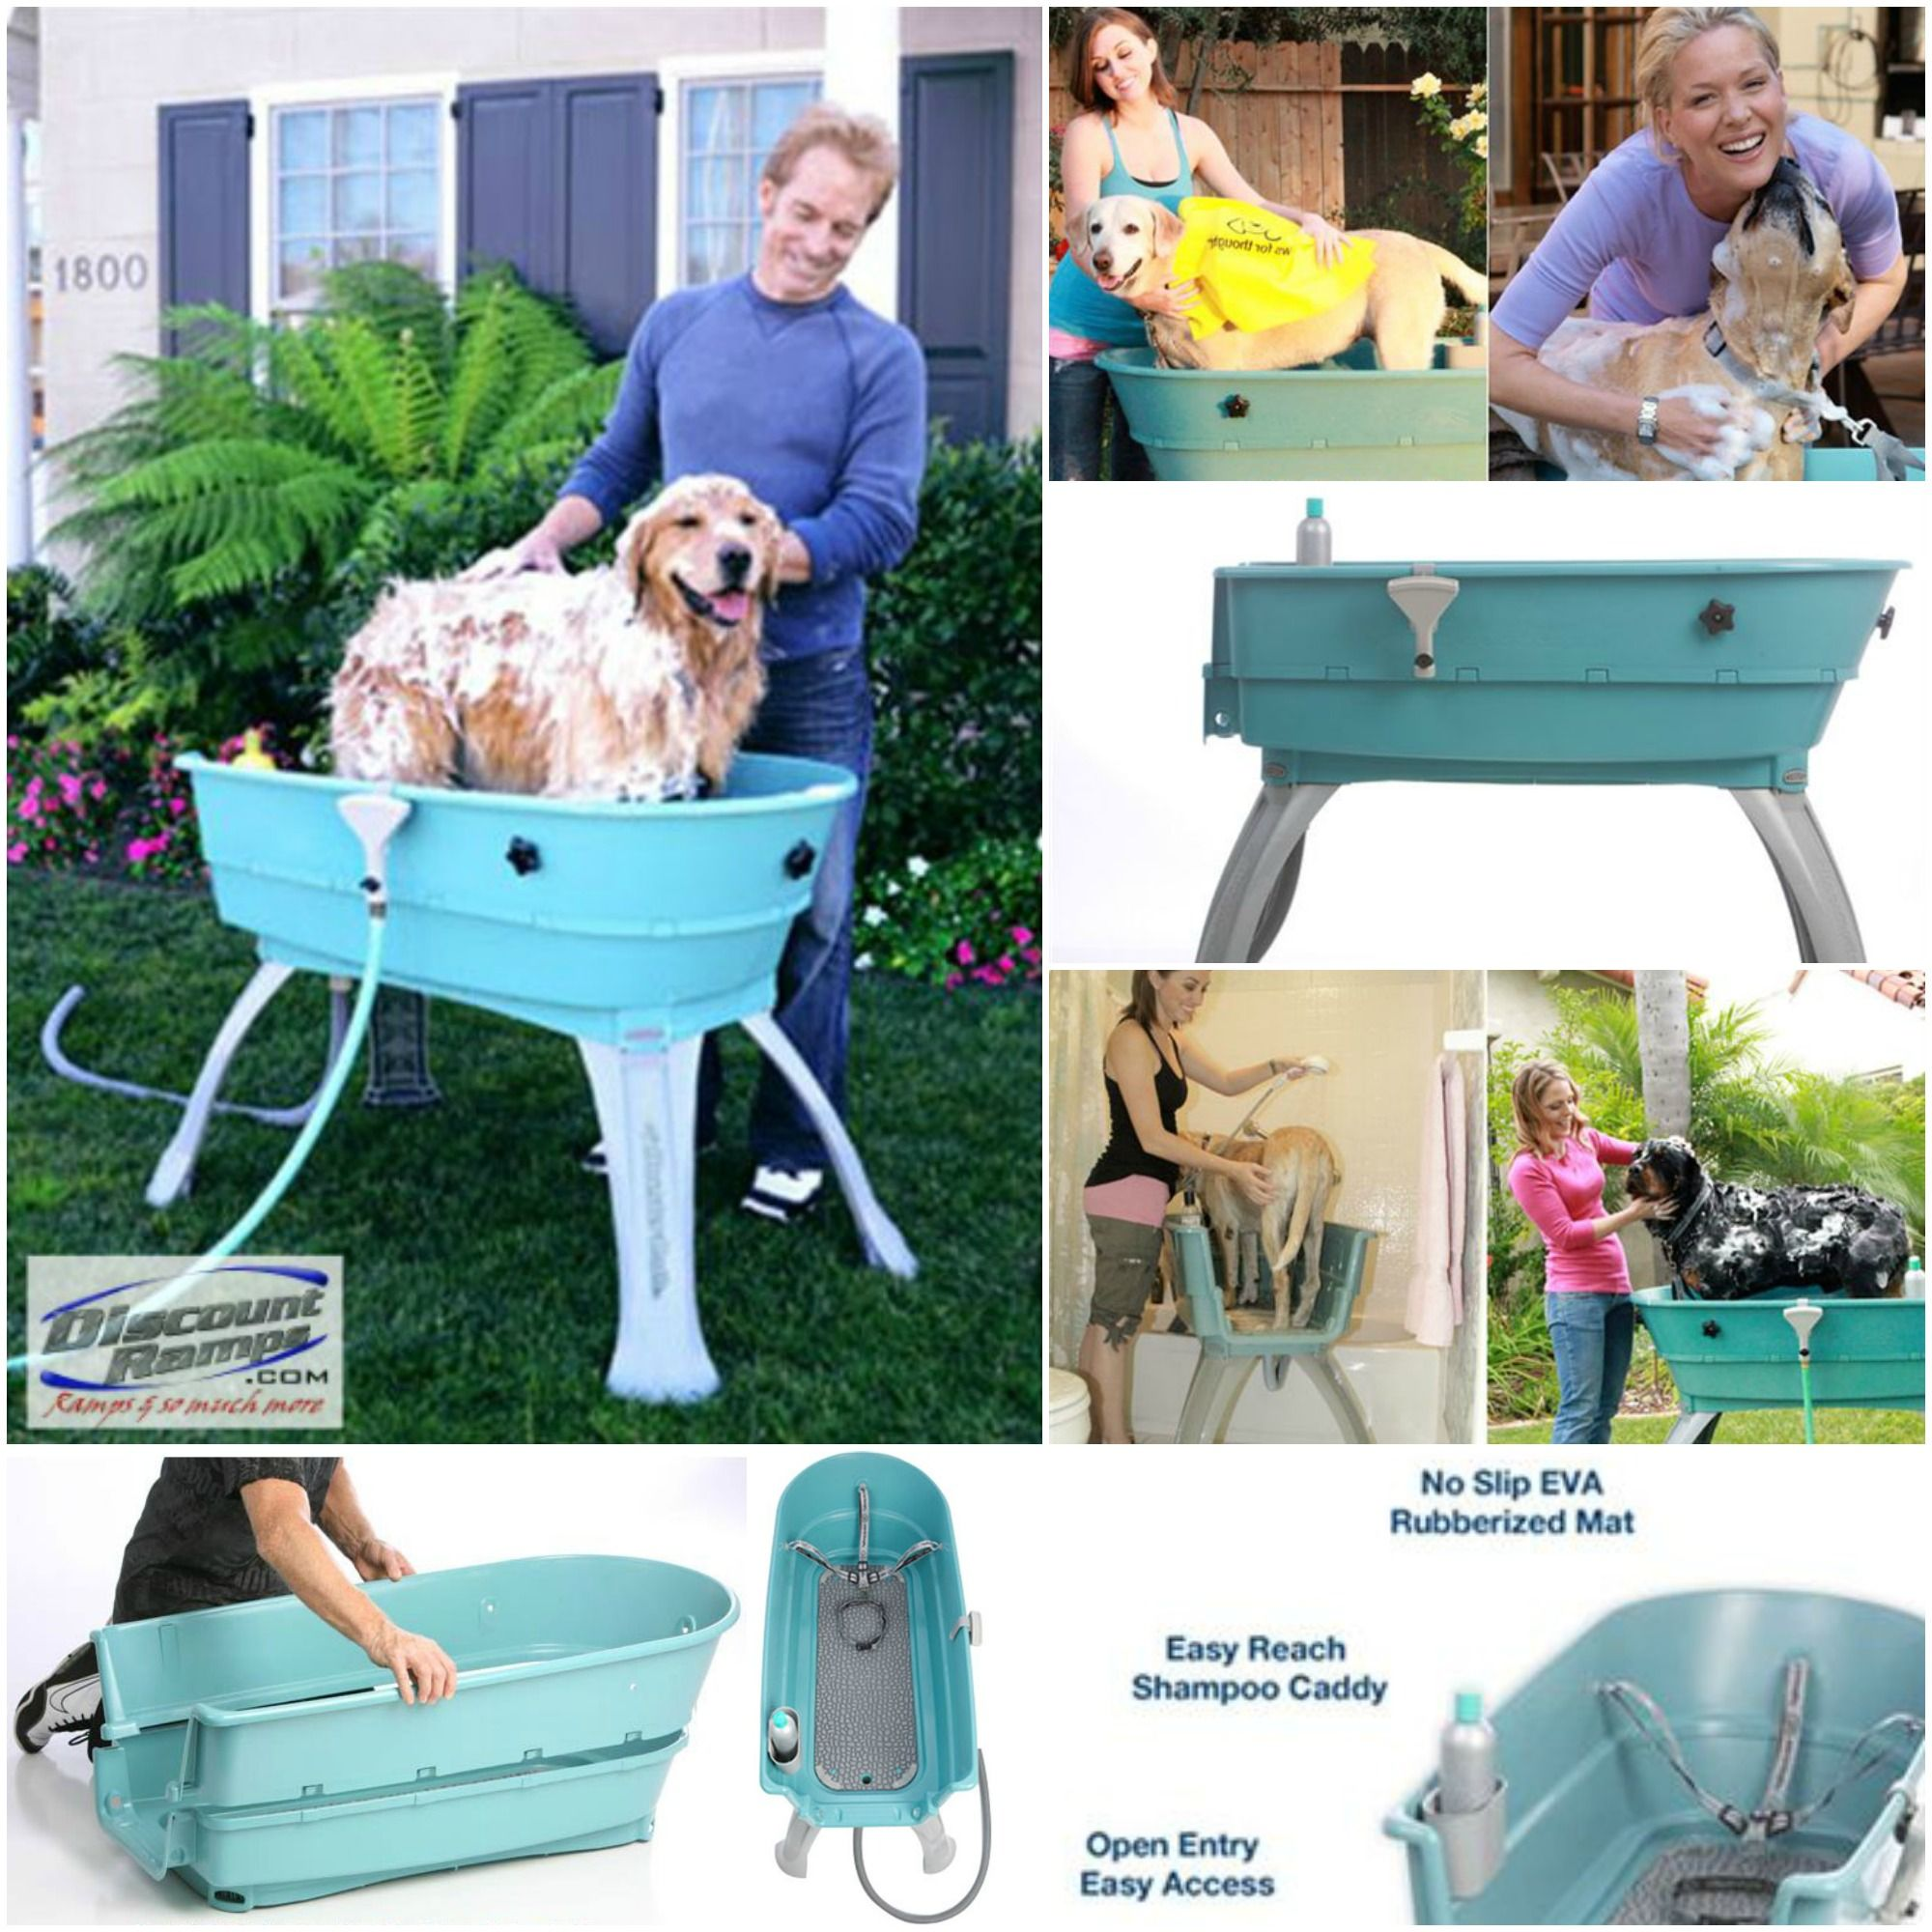 Booster Bath Dog Tub From Discount Ramps Make Bath Time Fun Time